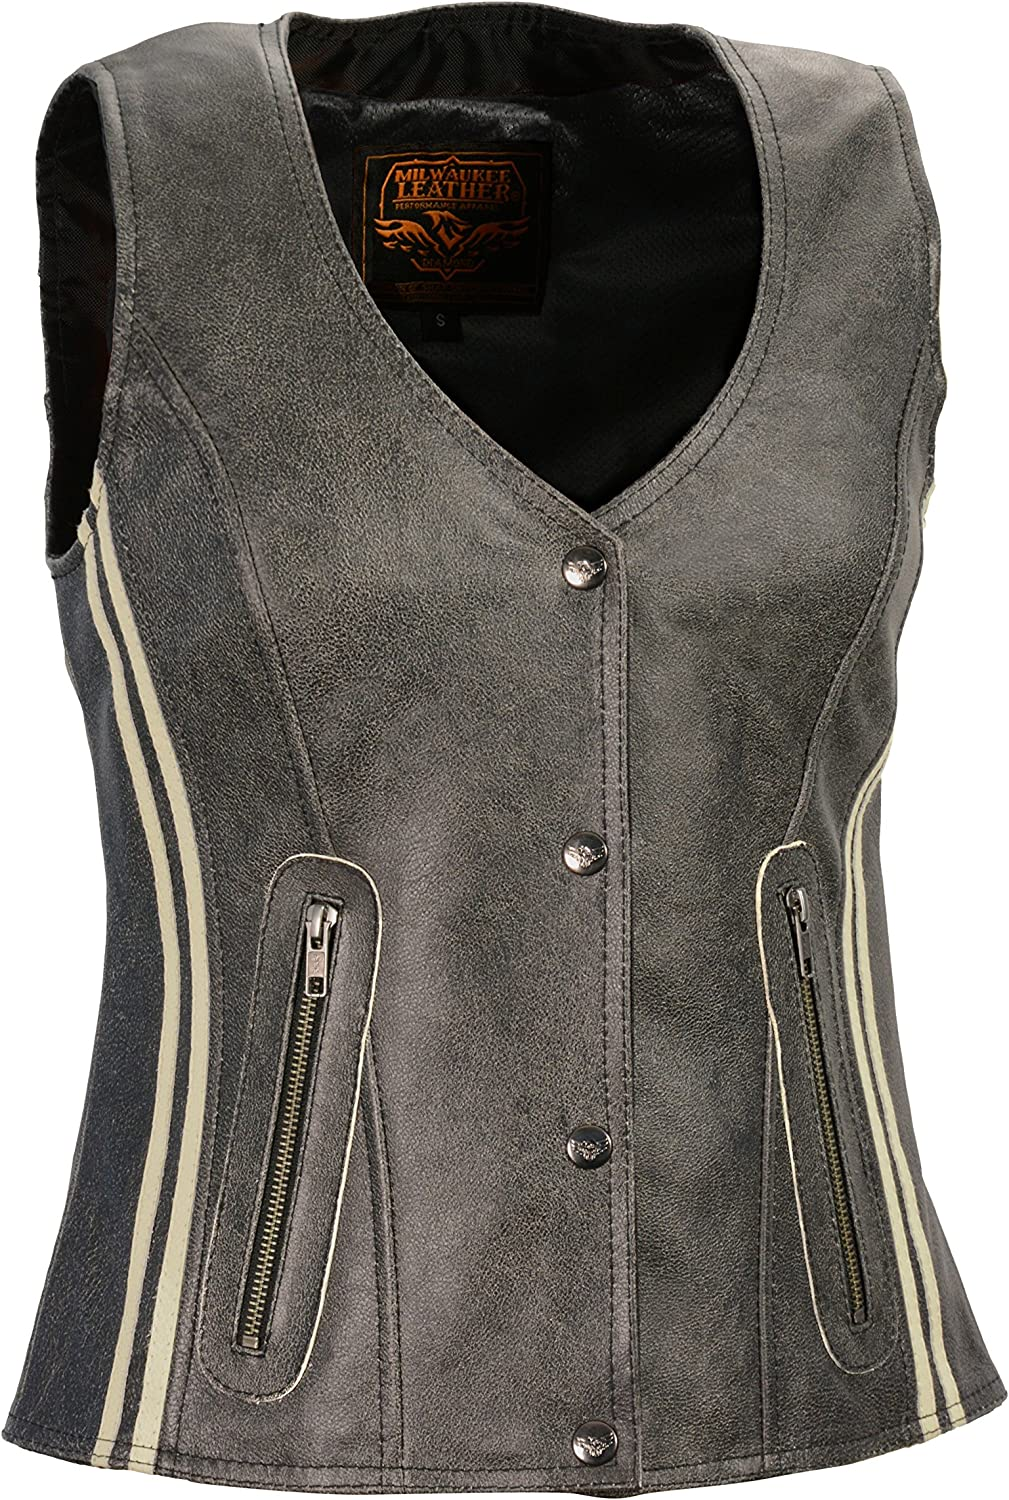 Milwaukee Leather MLL4506 Womens Grey Leather Vintage Slate Snap Front Vest with Racing Stripes X-Small